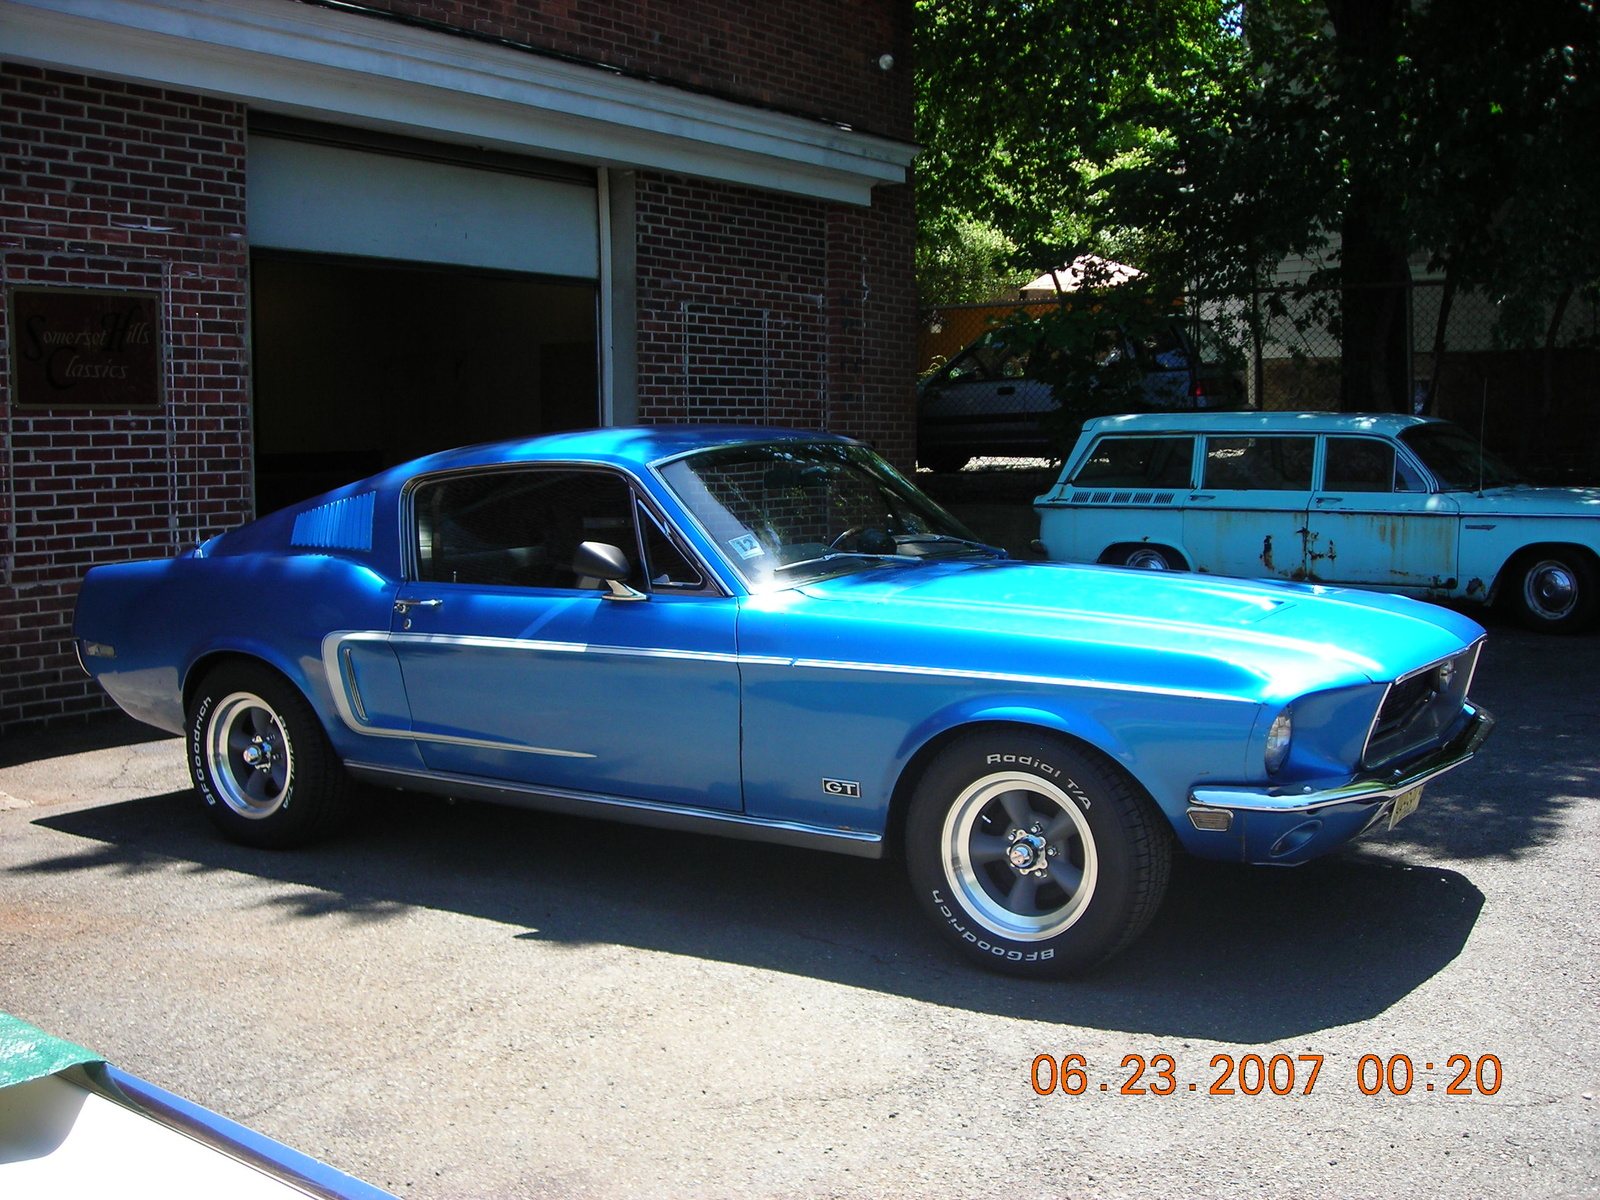 1968 ford mustang: